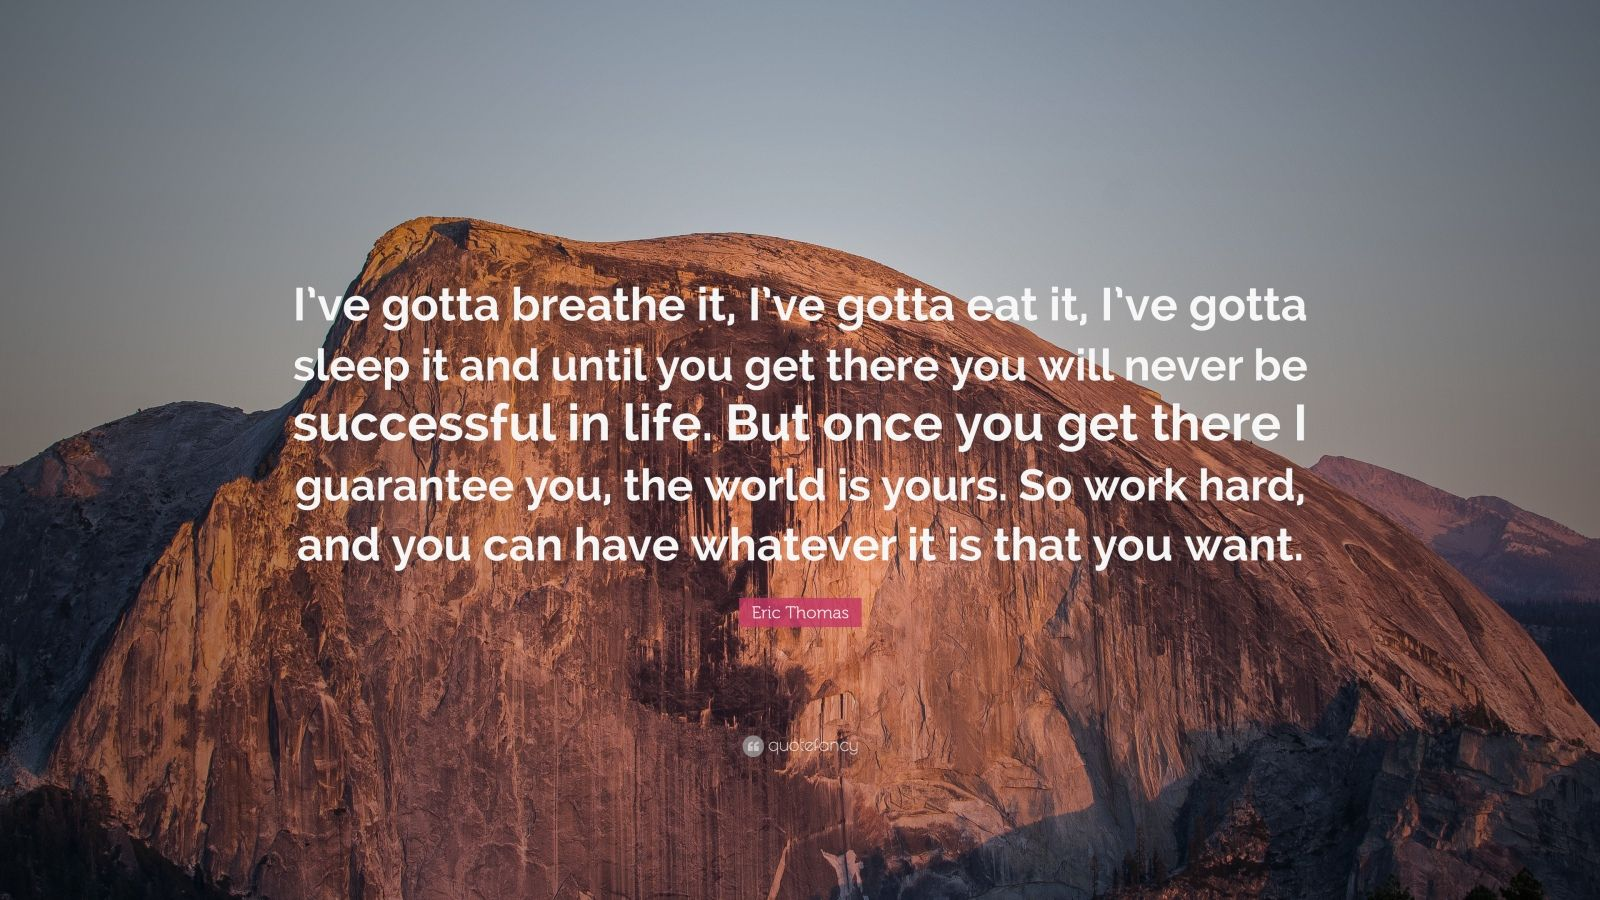 """Eric Thomas Quote: """"I've gotta breathe it, I've gotta eat it, I've gotta sleep it and until you get there you will never be successful in life. But once you get there I guarantee you, the world is yours. So work hard, and you can have whatever it is that you want."""""""